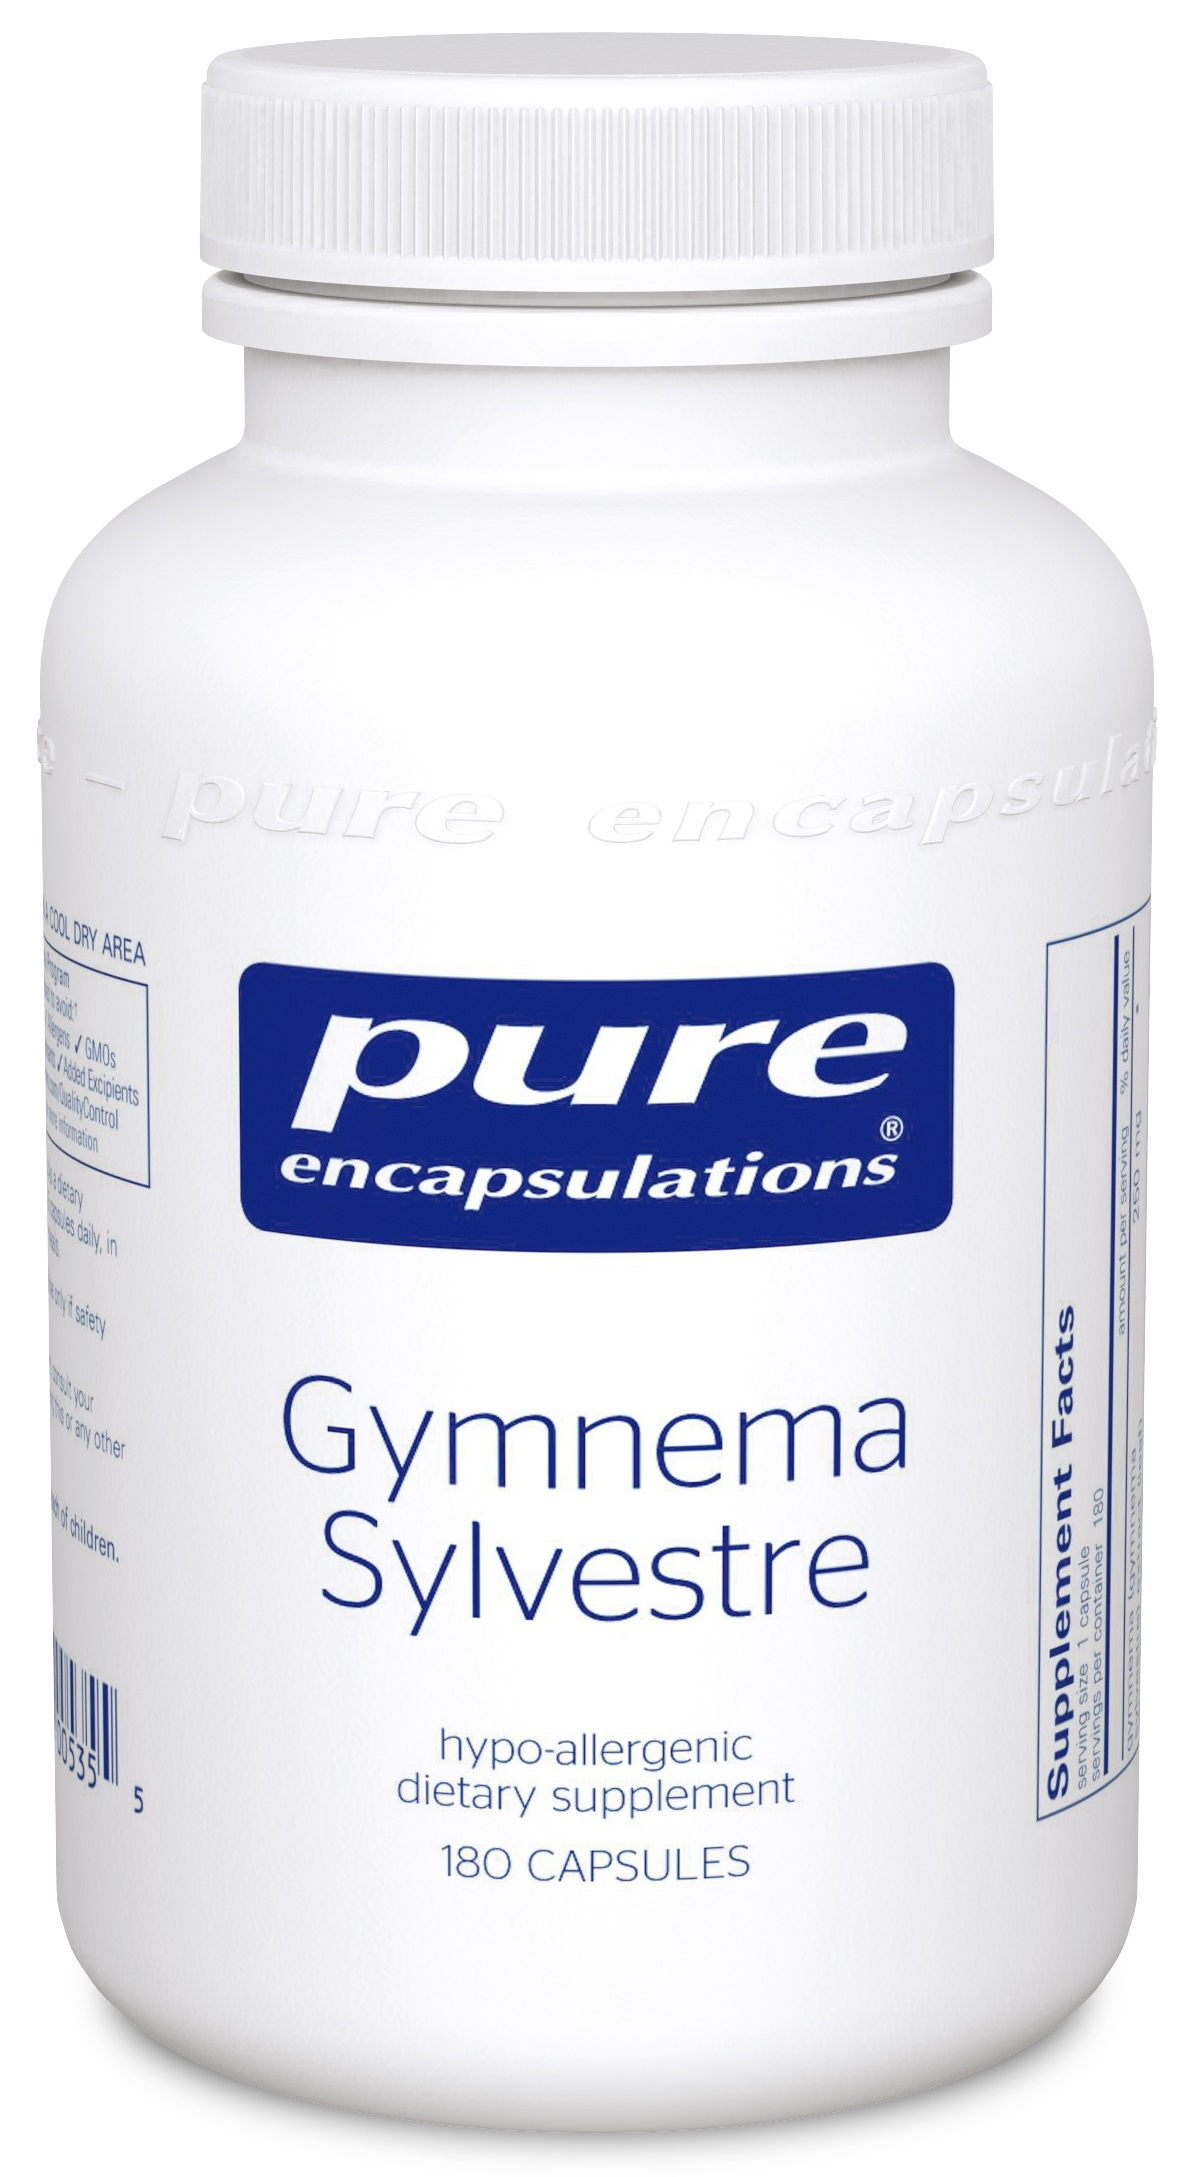 Pure Encapsulations Gymnema Sylvestre 180's